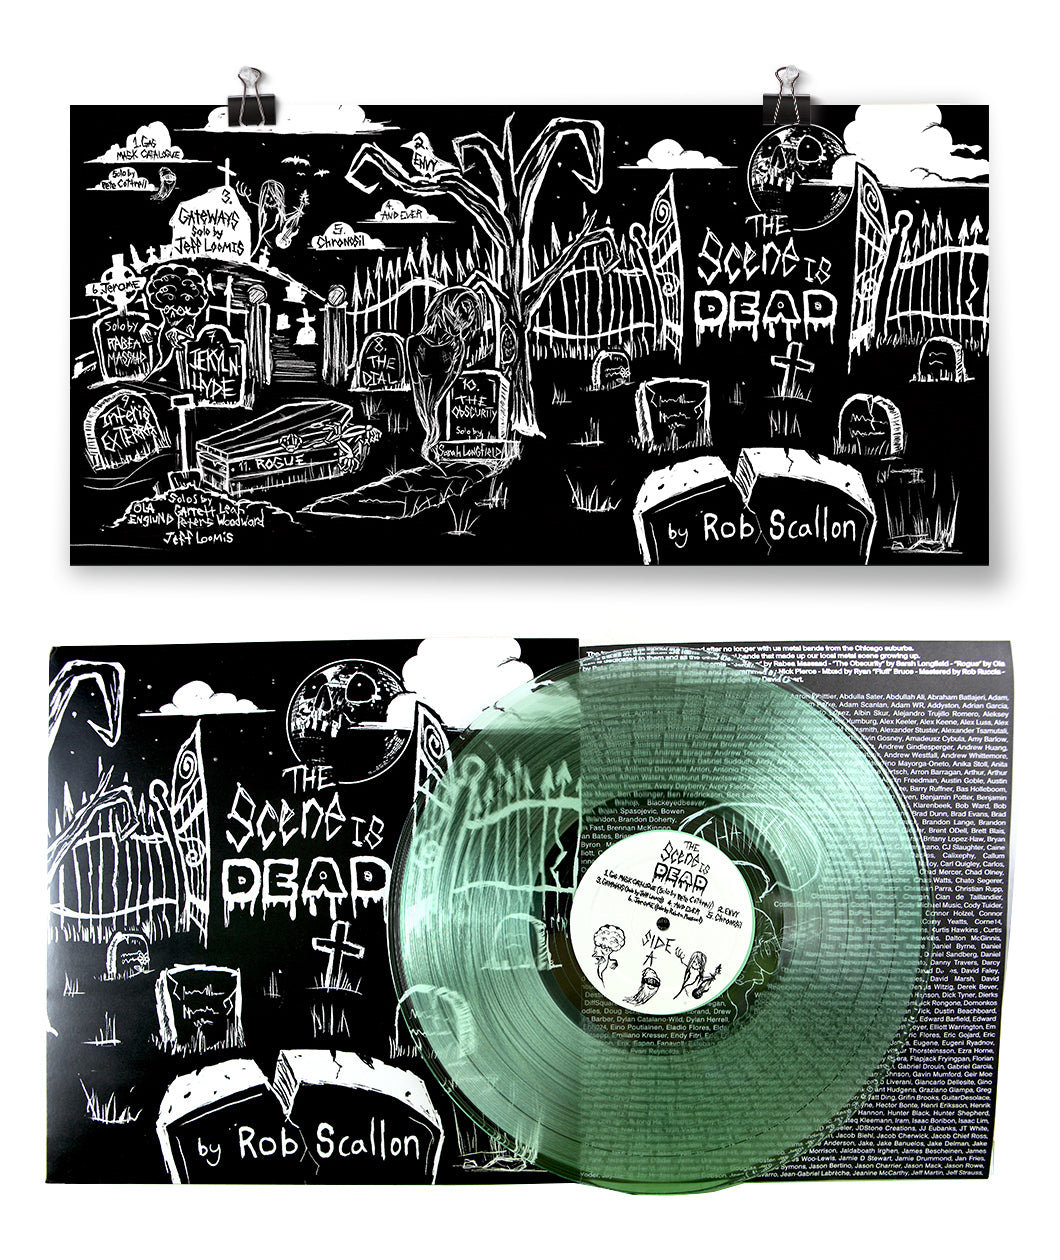 The Scene Is Dead Poster + Vinyl Bundle